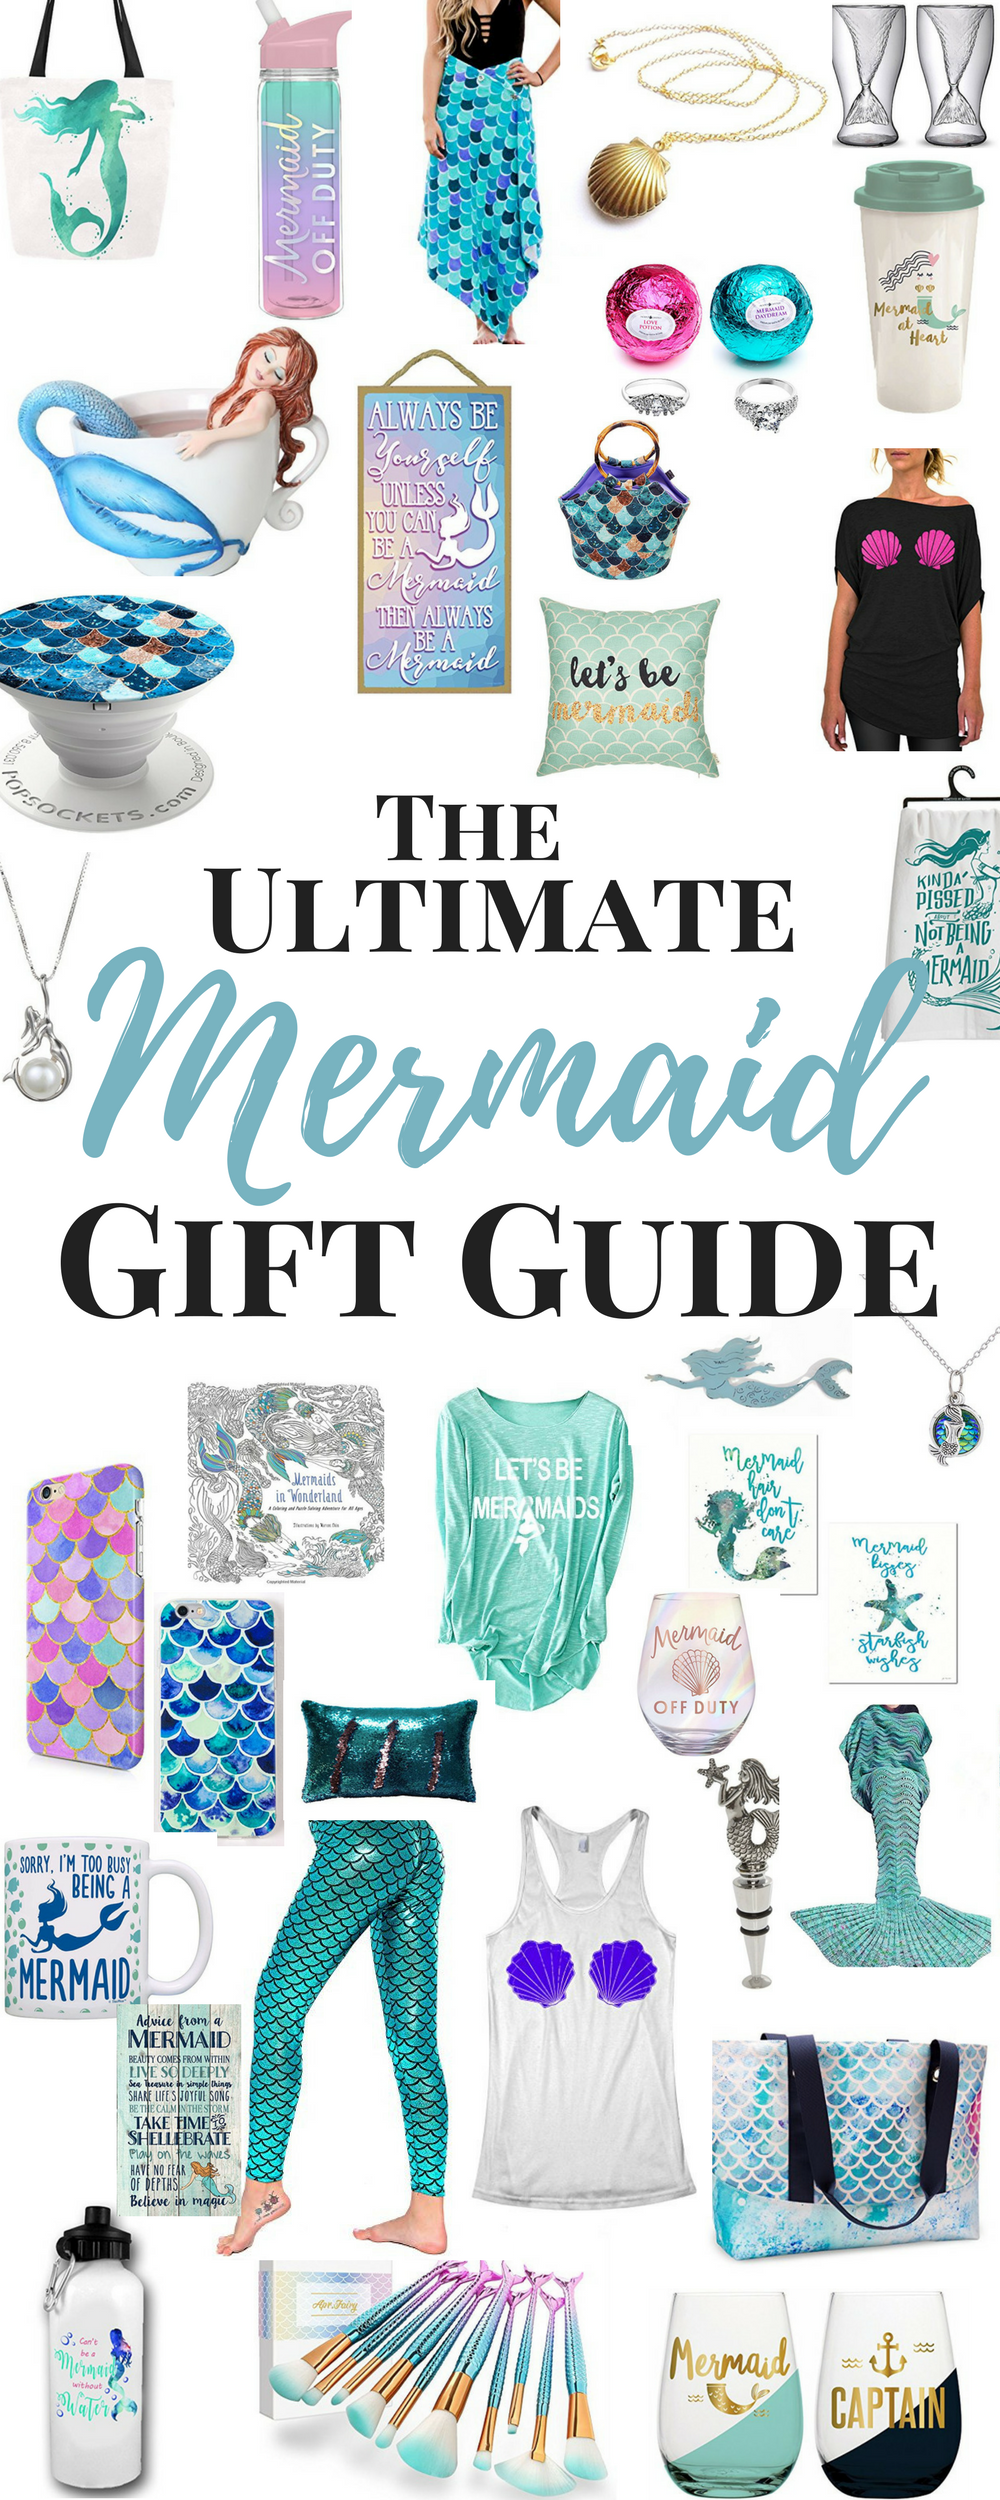 Best Mermaid Gifts For Girls And Adults Too Ourkindofcrazy Com